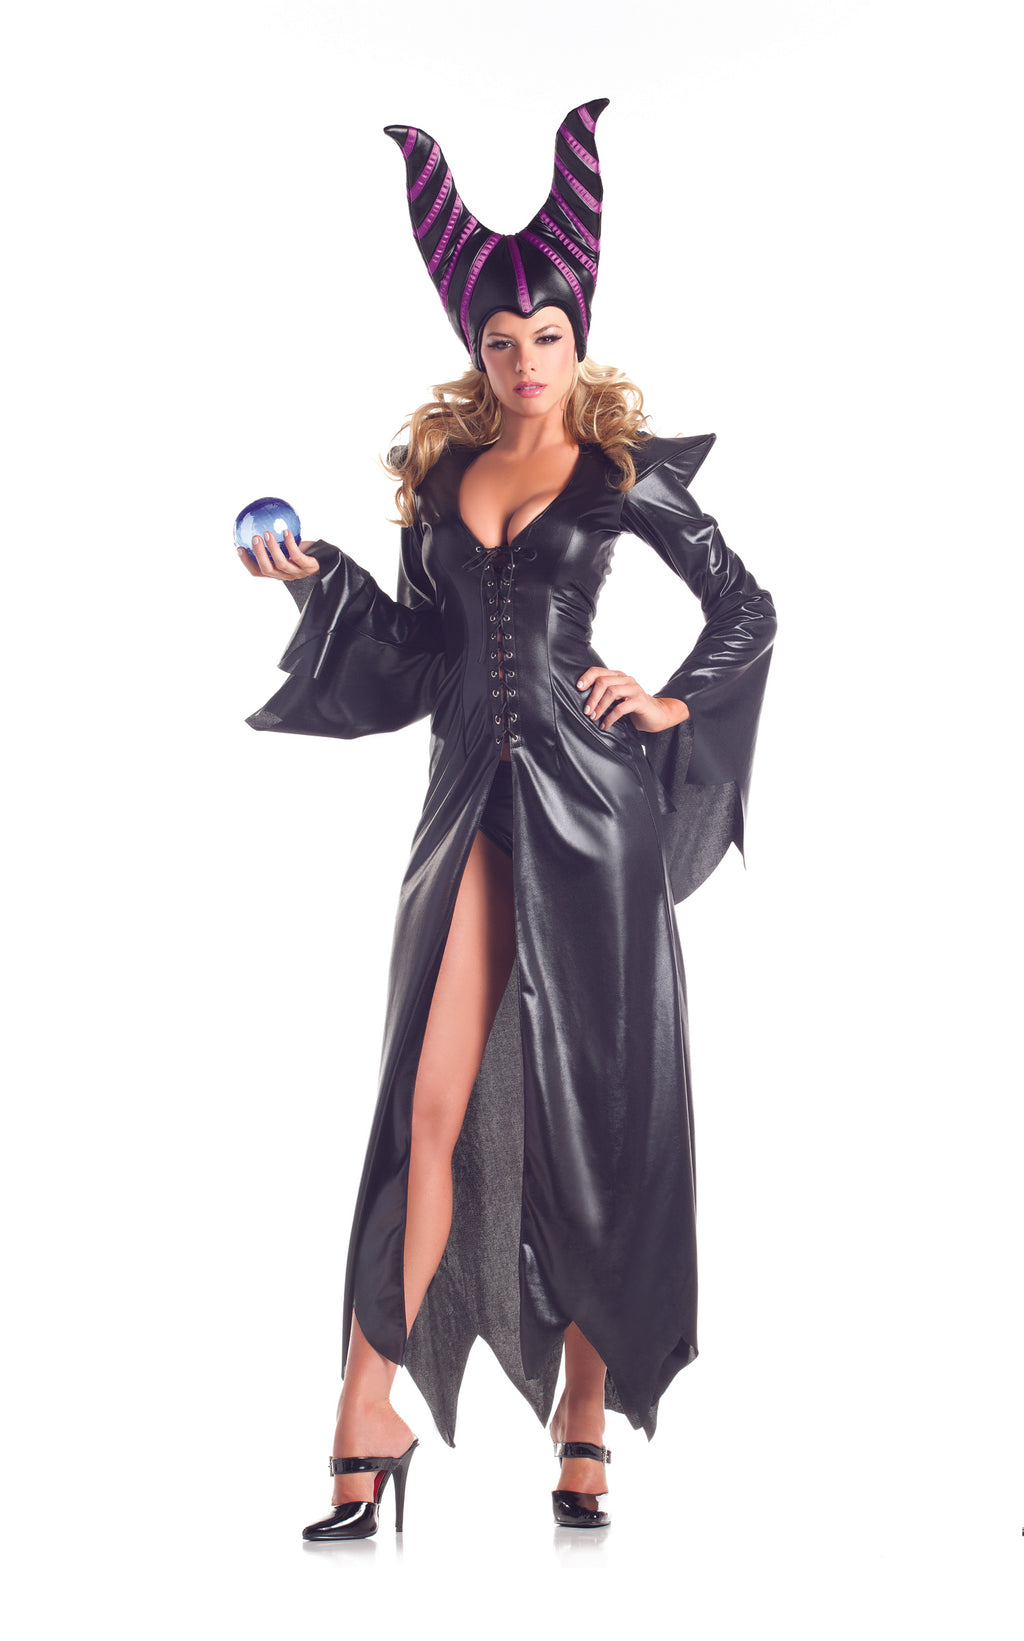 Adult-Women's-2-Piece-Sexy-Maleficent-Halloween-Party-Costume-